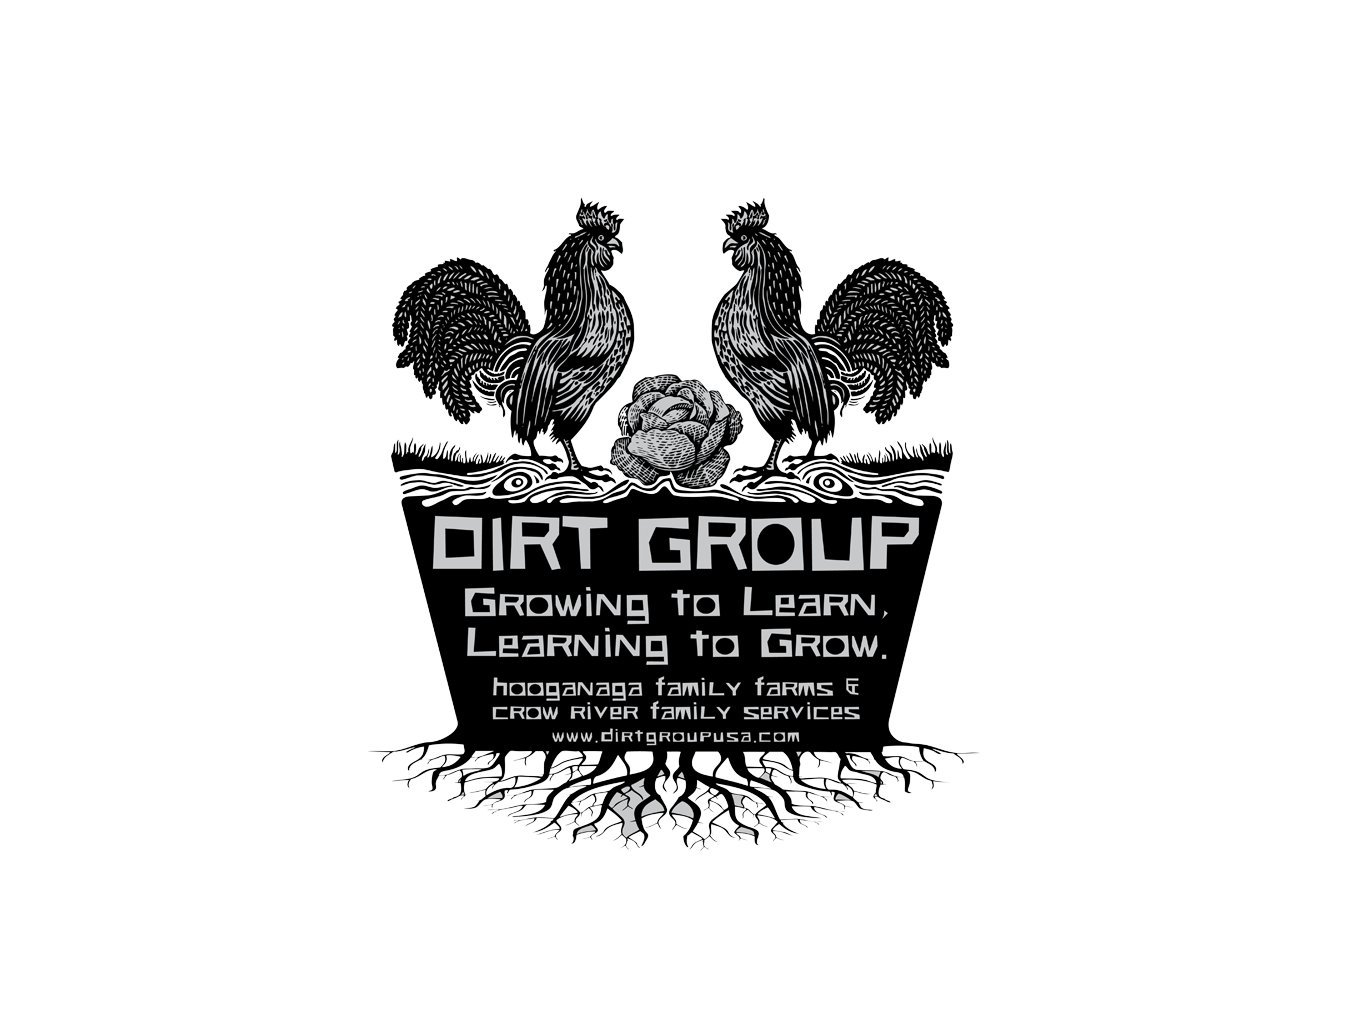 Dirt Group